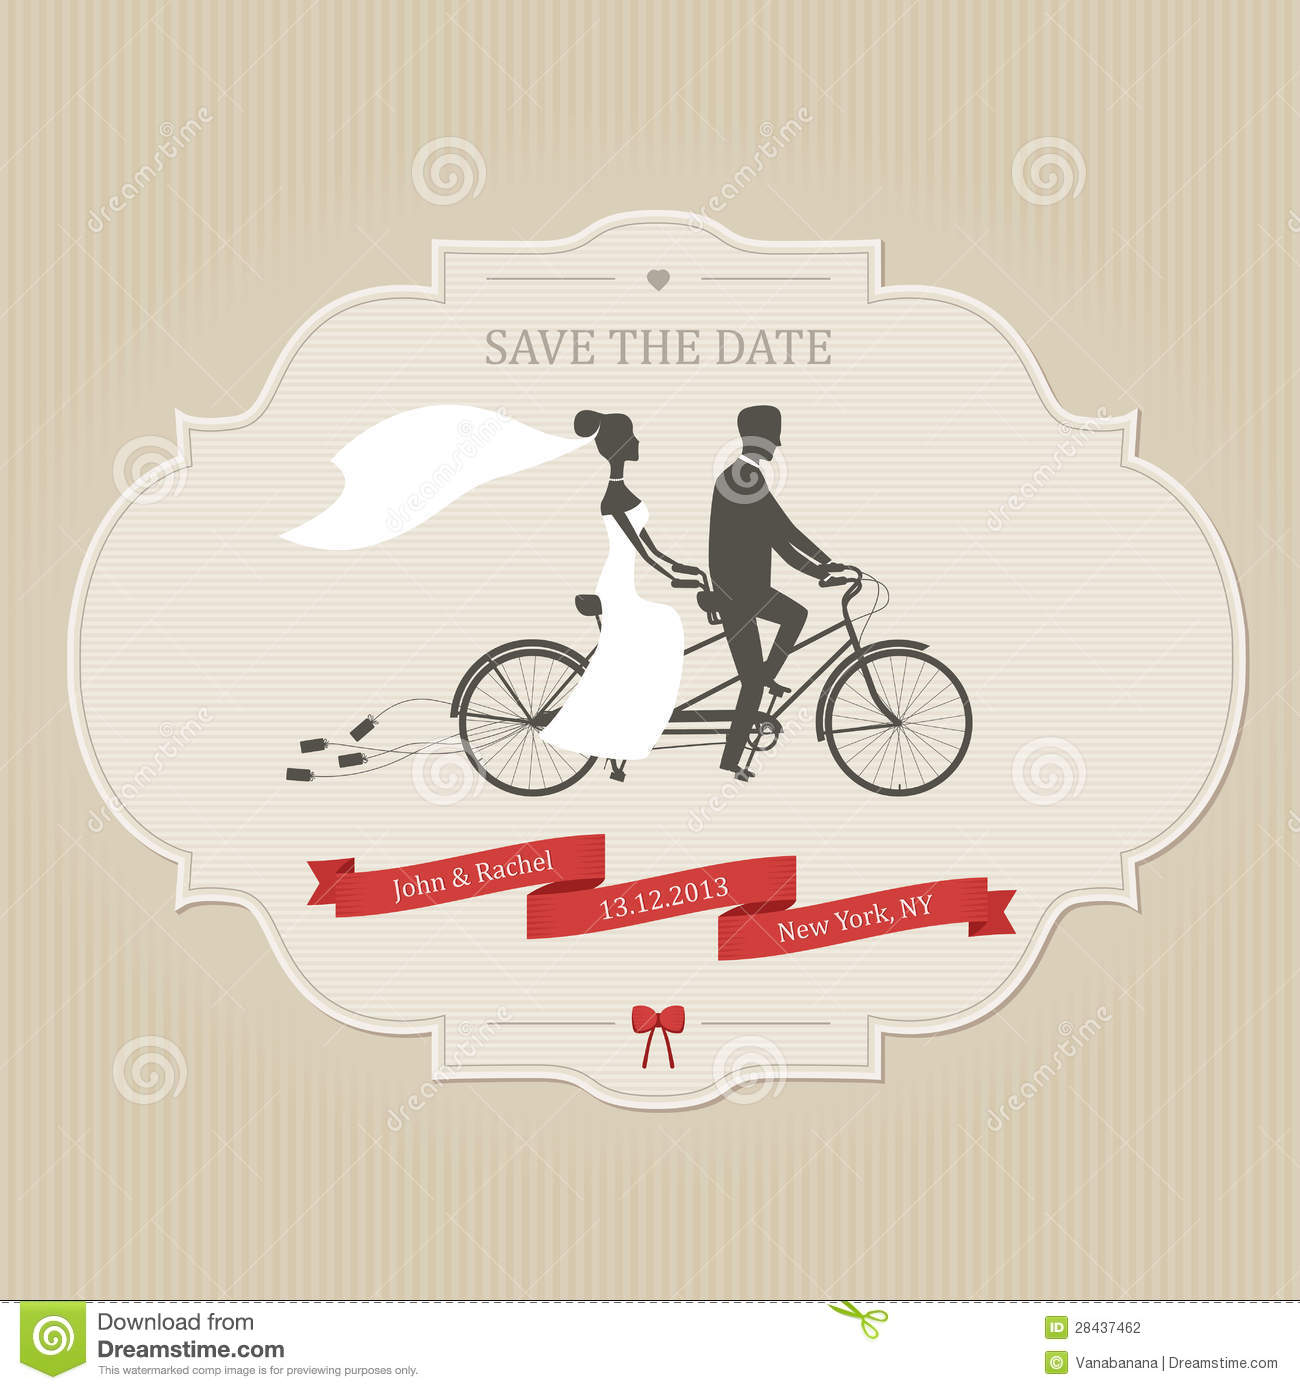 Funny Wedding Invitation With Bride And Groom Riding Tandem Bicycle